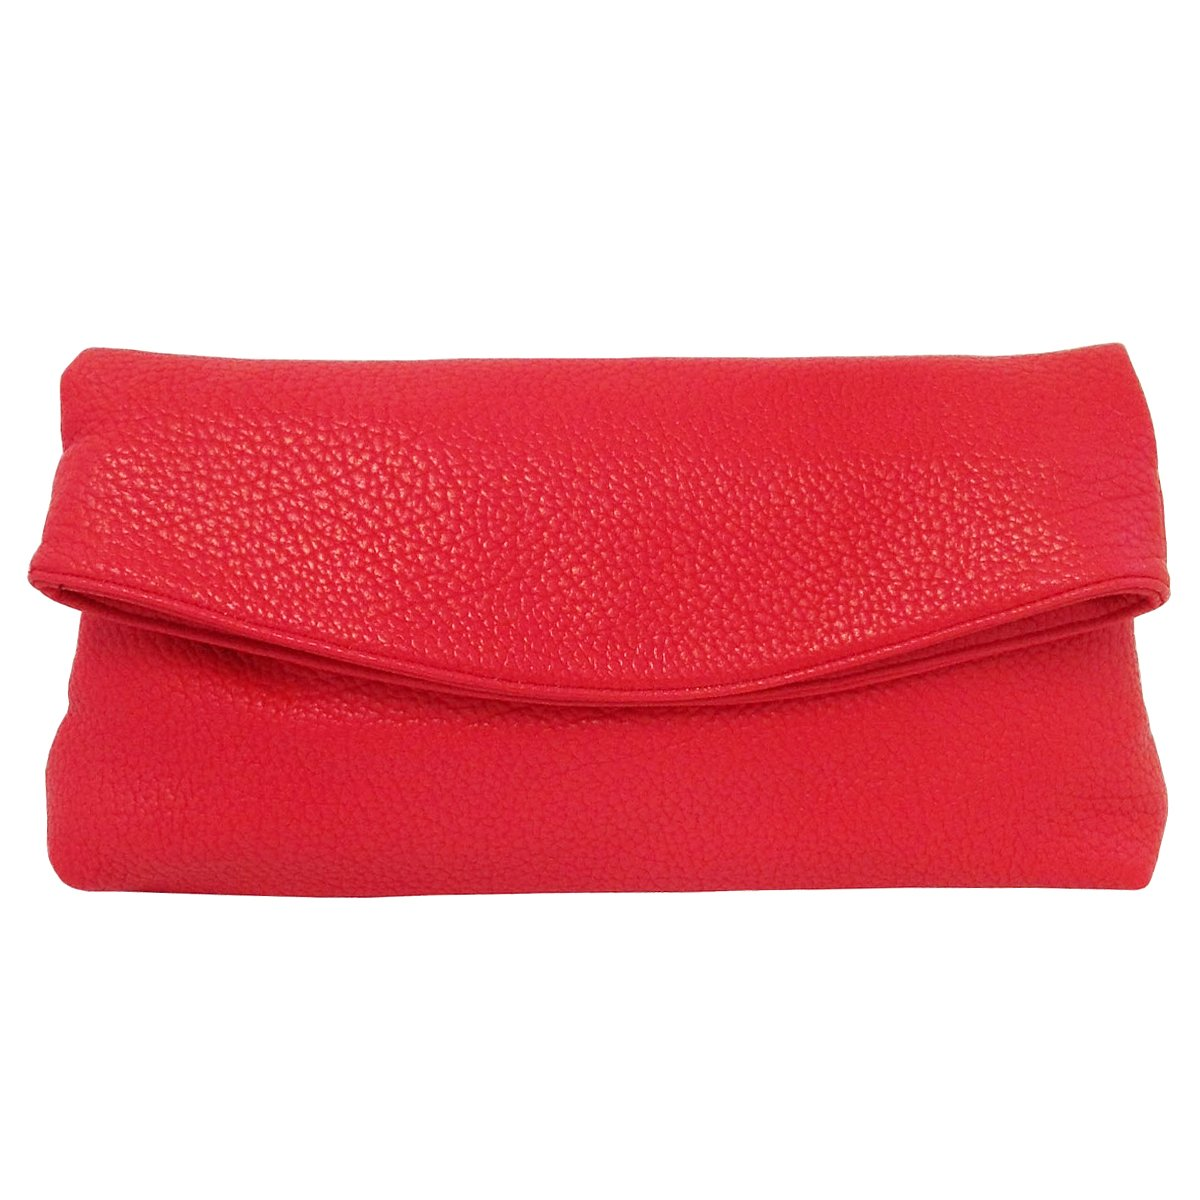 Faux Leather Oversize Foldover Clutch, Red